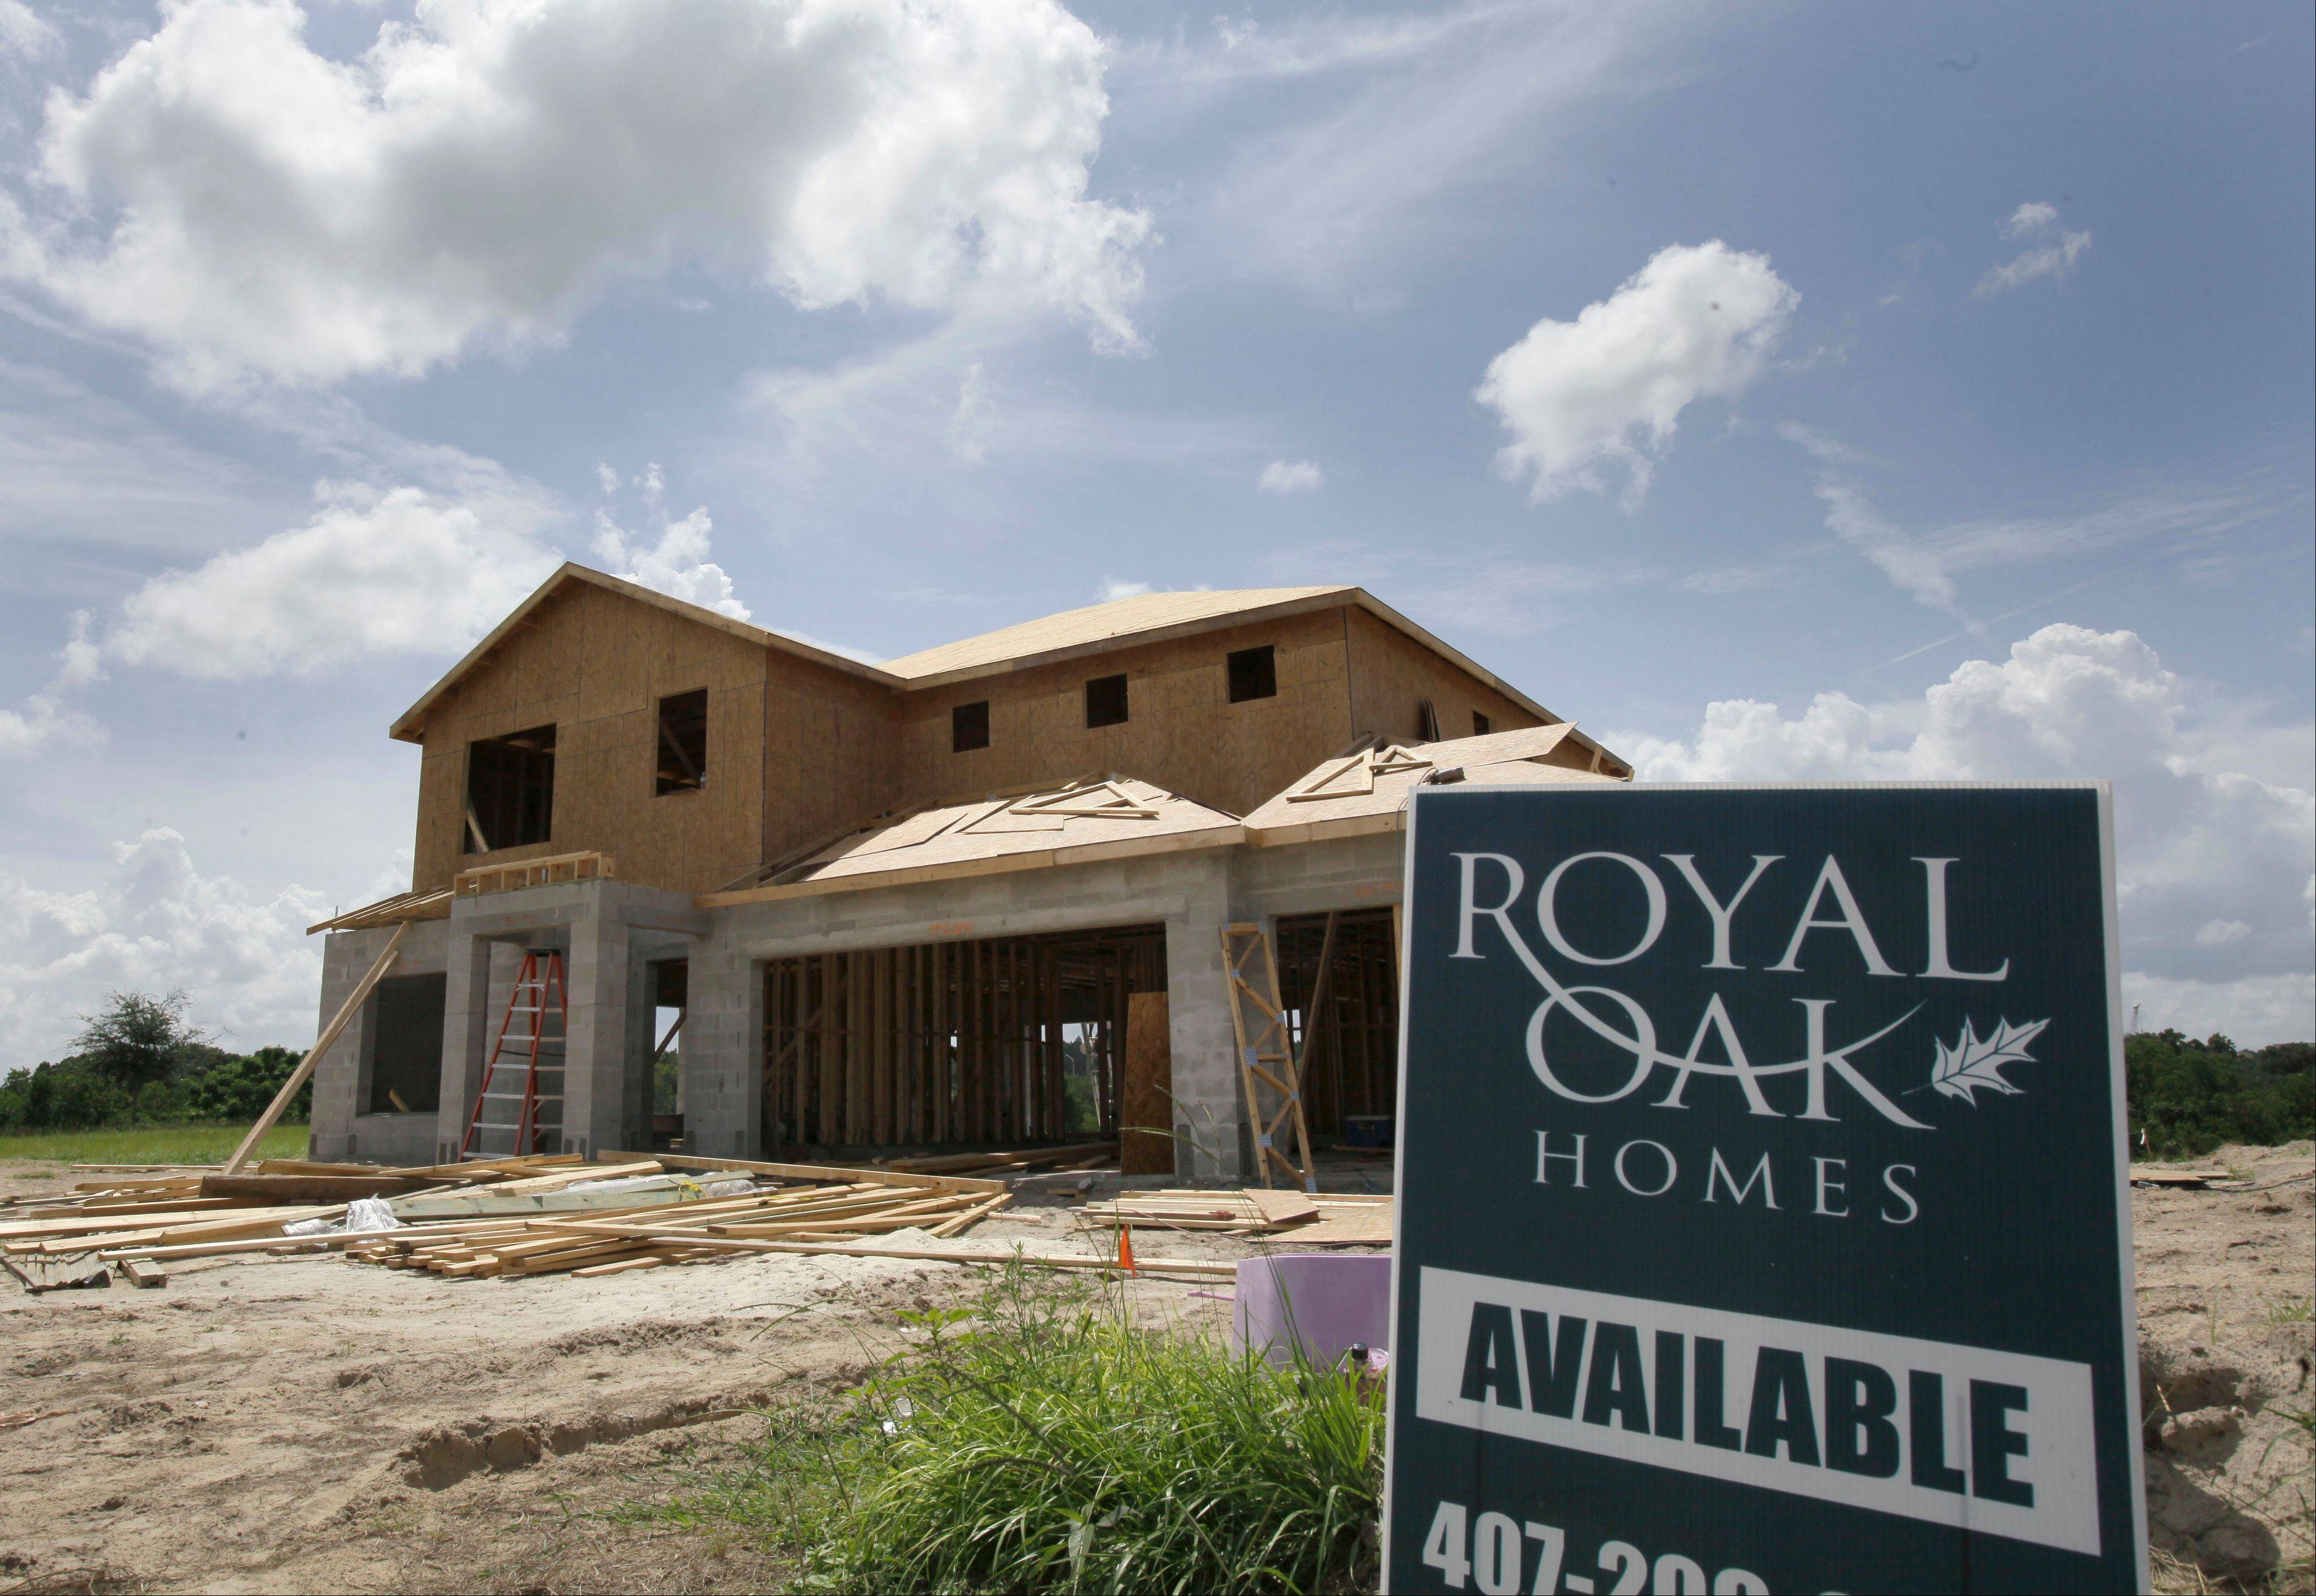 Sales of new homes fell to a six-month low in August. The fourth straight monthly decline during the peak buying season suggests the housing market is years away from a recovery.